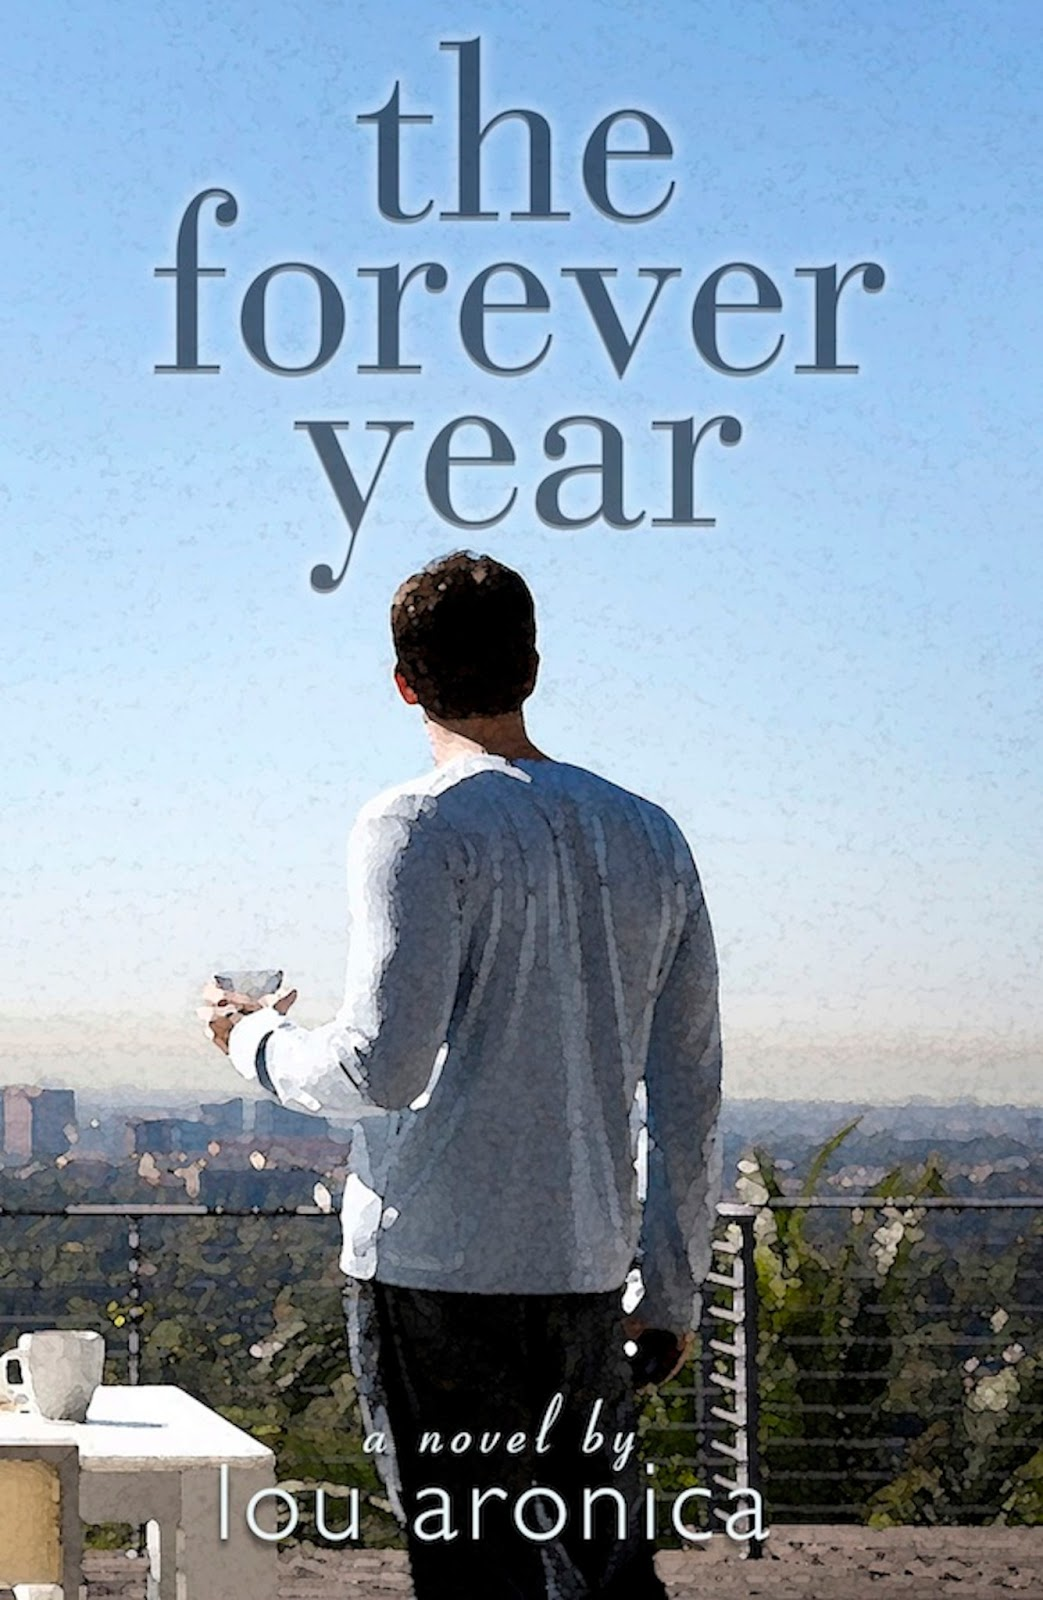 The Forever Year Lou Aronica Fiction Std January 2013 366 Pp Pbk Also  Available As Ebook Isbn #: 9781936558360